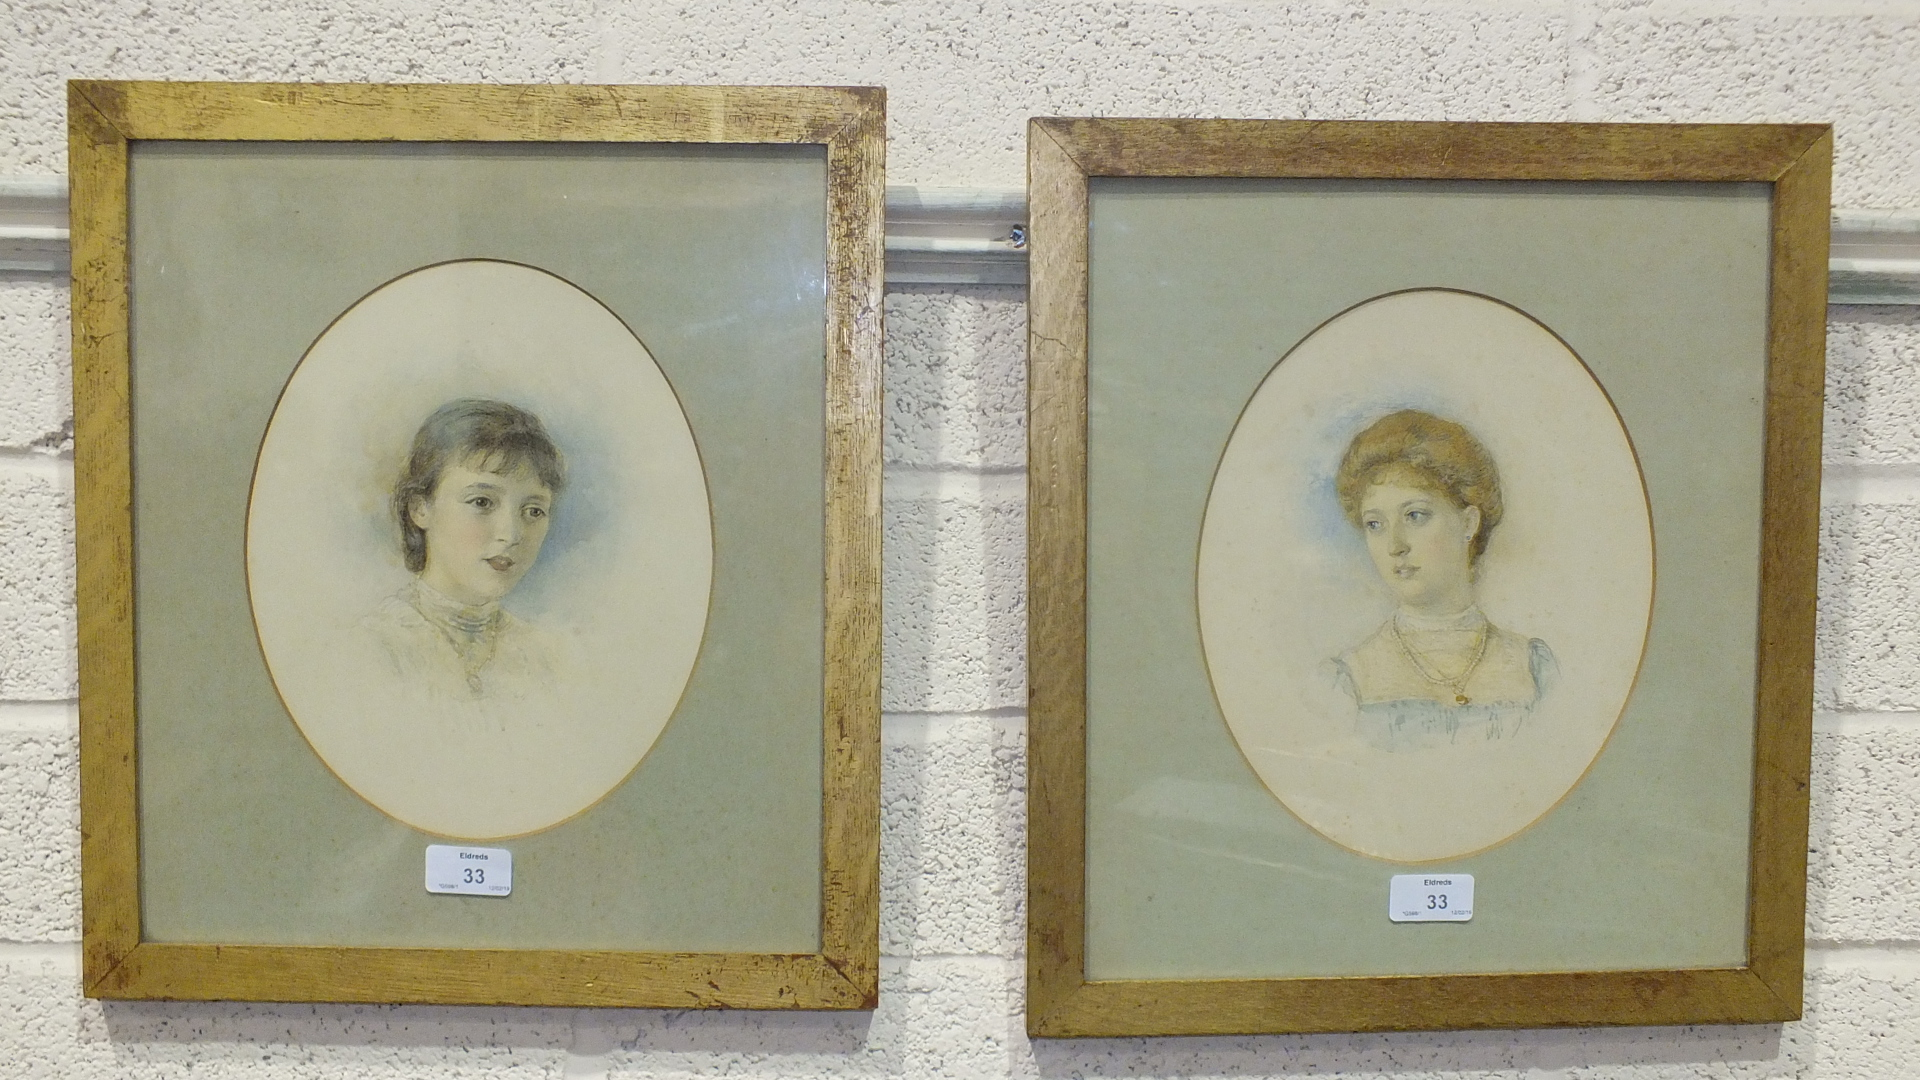 Lot 33 - Henry John Stock (1853-1930), 'Study of a young woman wearing a locket', a watercolour, signed